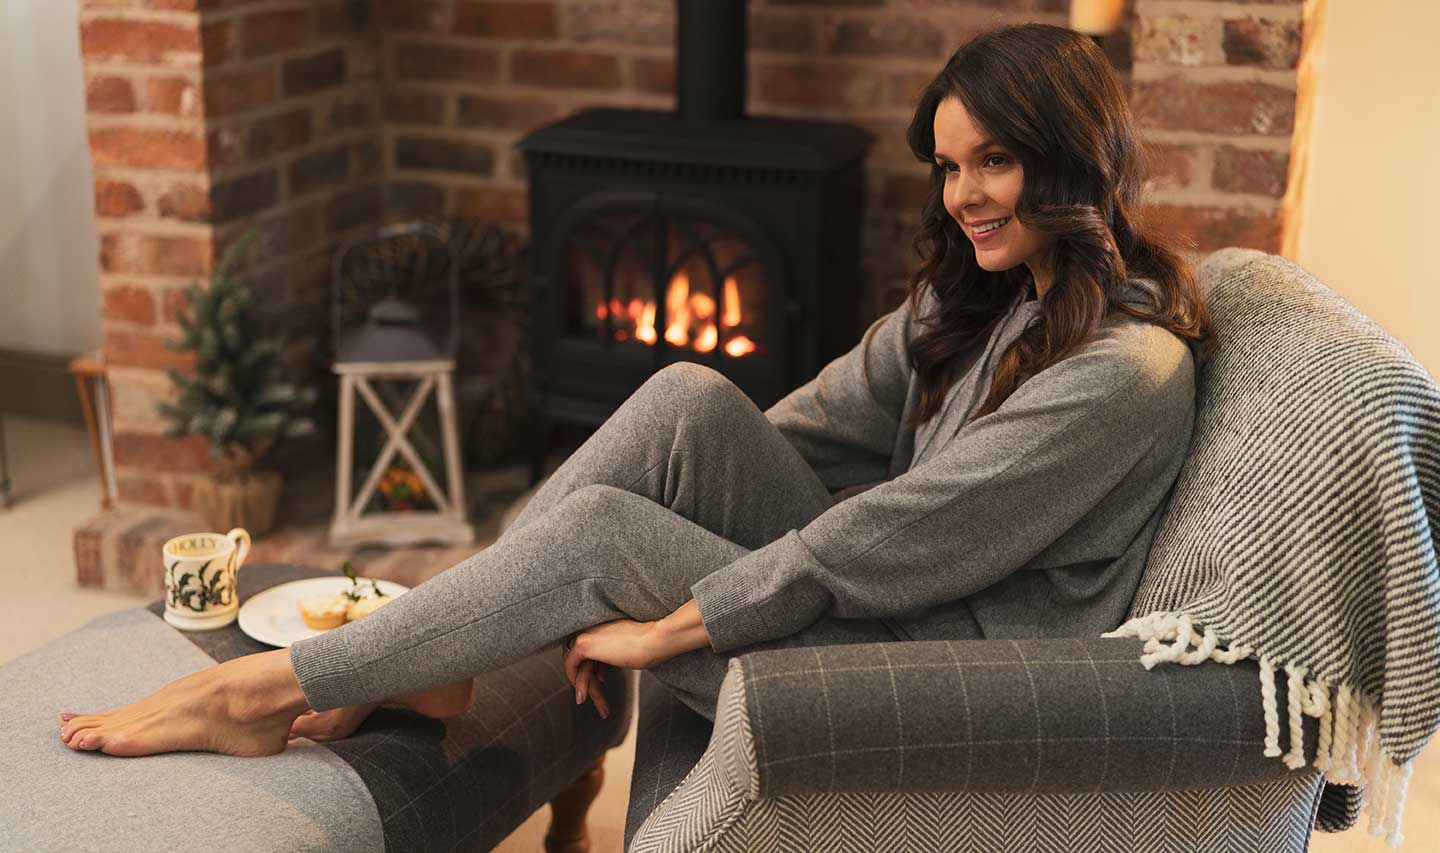 grey cashmere loungewear at home with fire in background